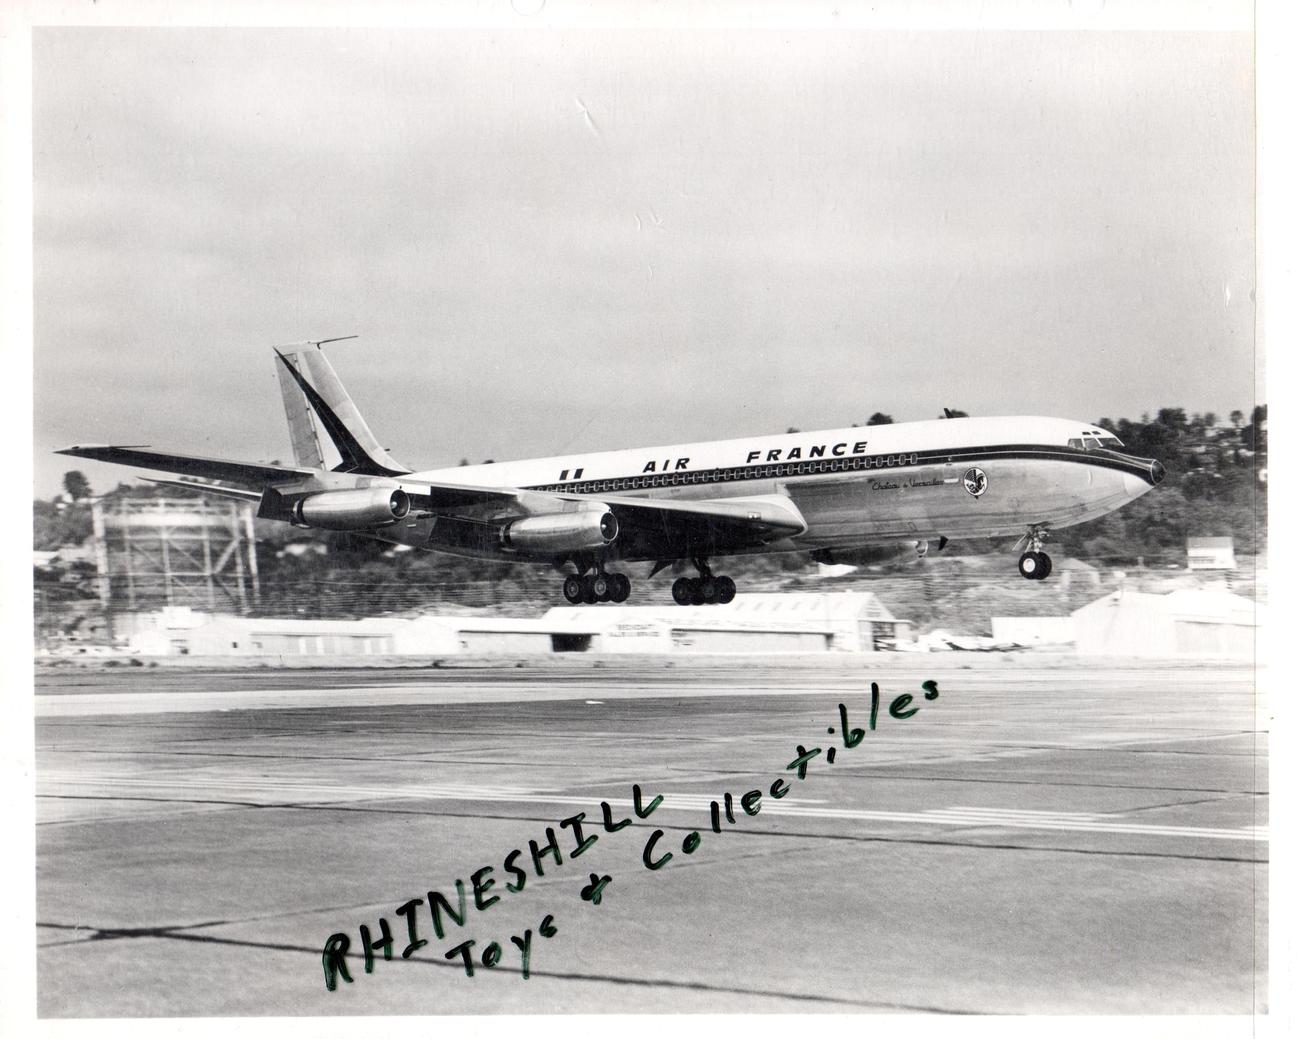 Air France Boeing 707 Photo of plane landing